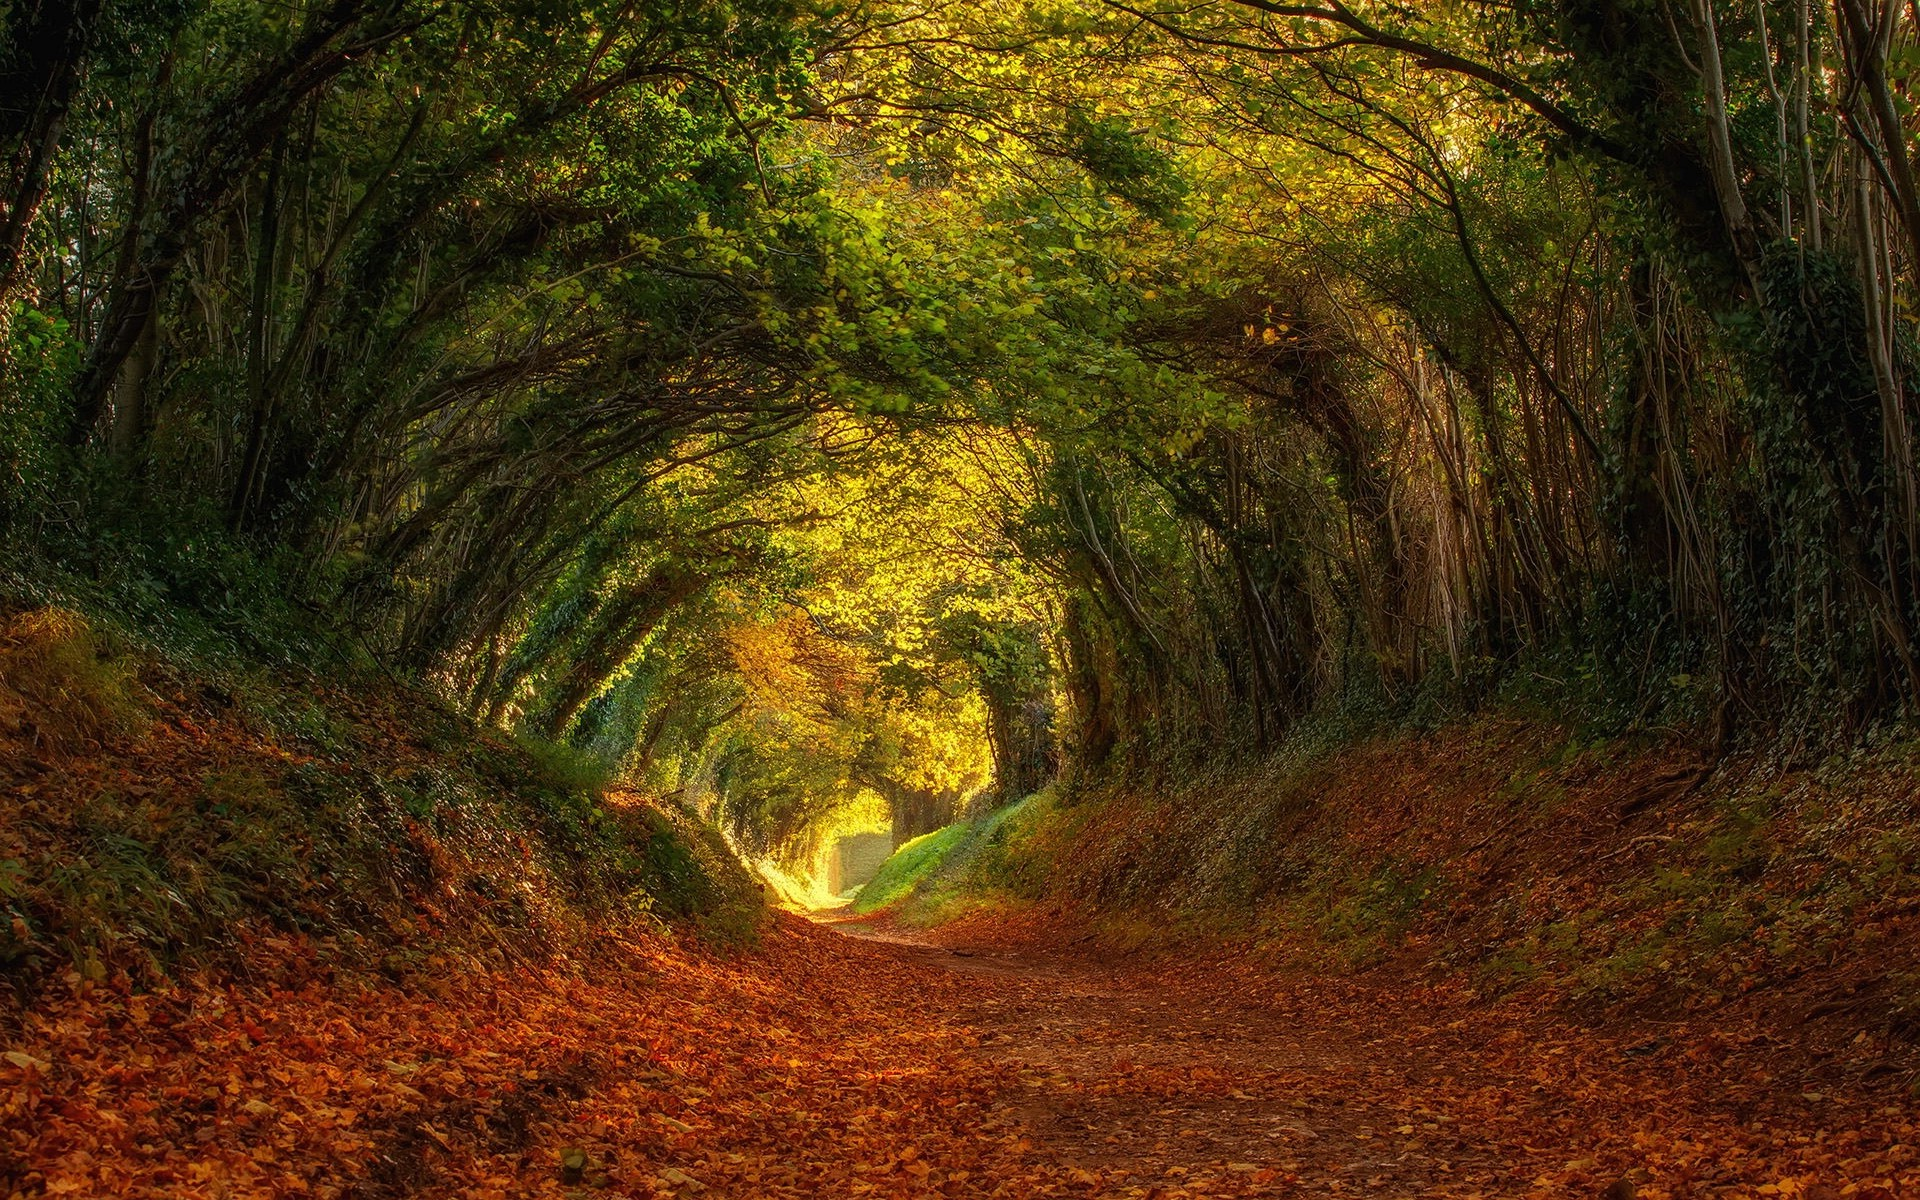 Fall Wallpaper 1600x900 Landscape Nature Trees Leaves Shrubs Tunnel Dry